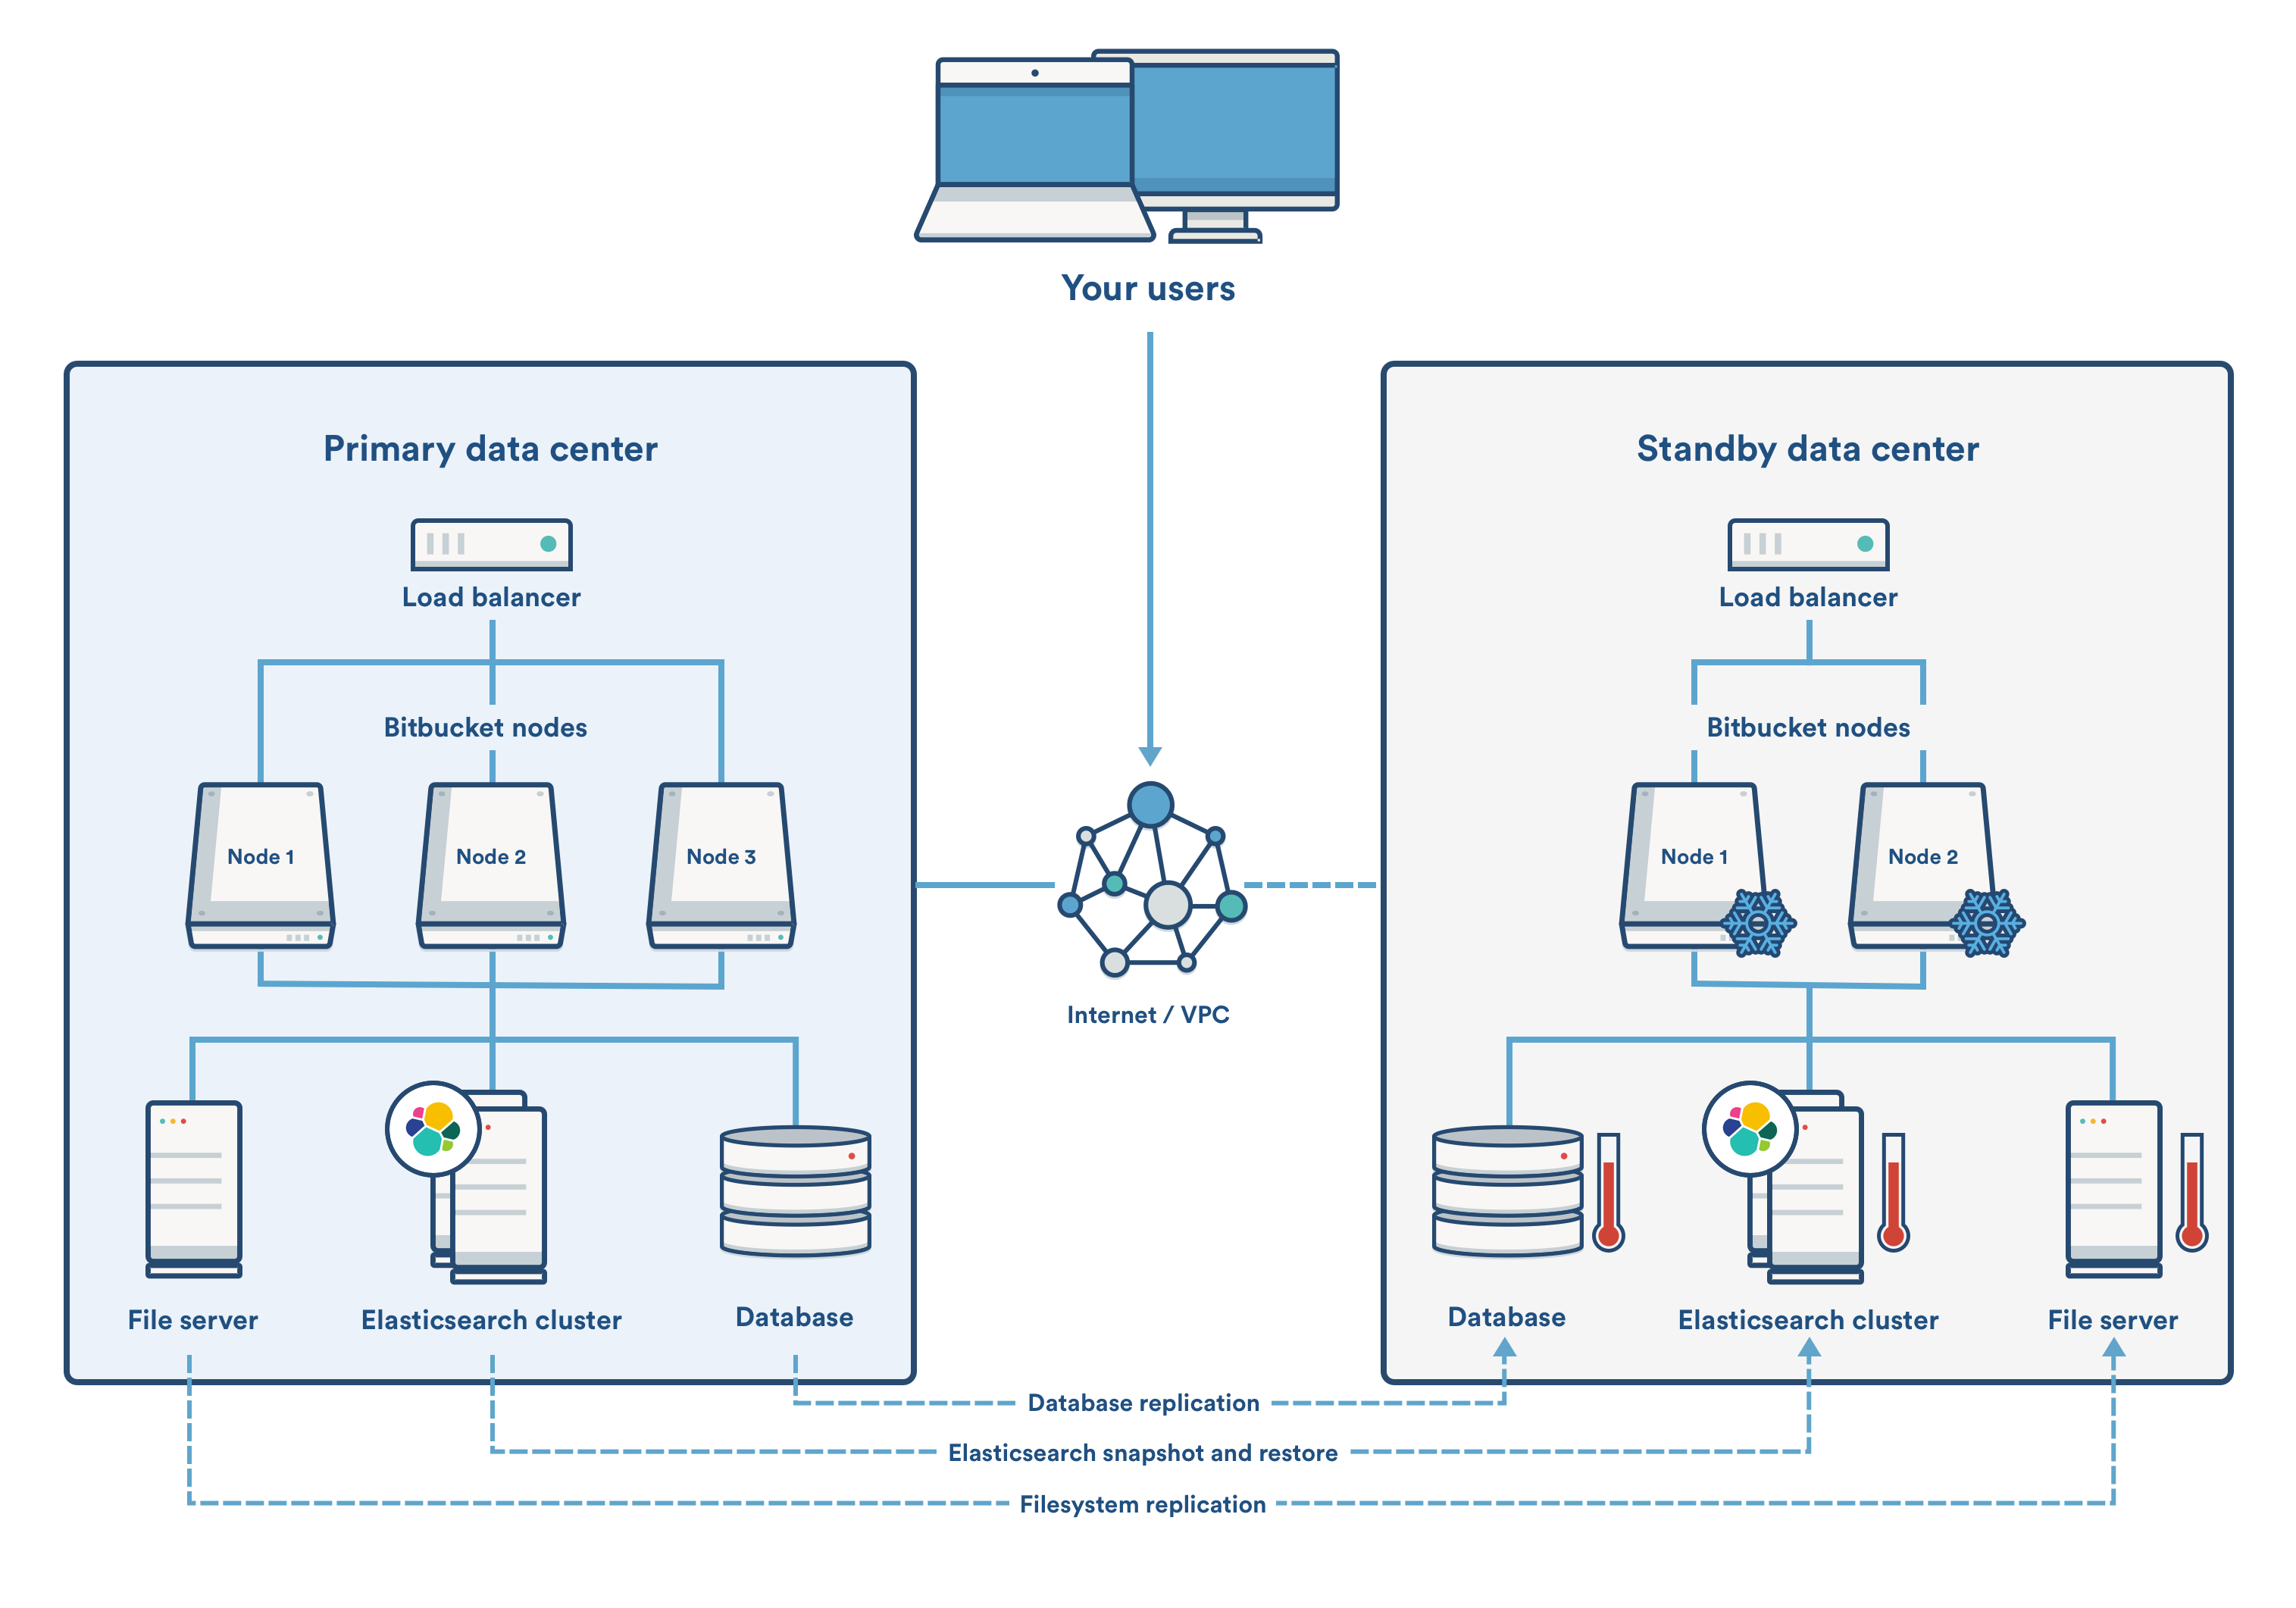 Disaster recovery guide for Bitbucket Data Center - Atlassian ...